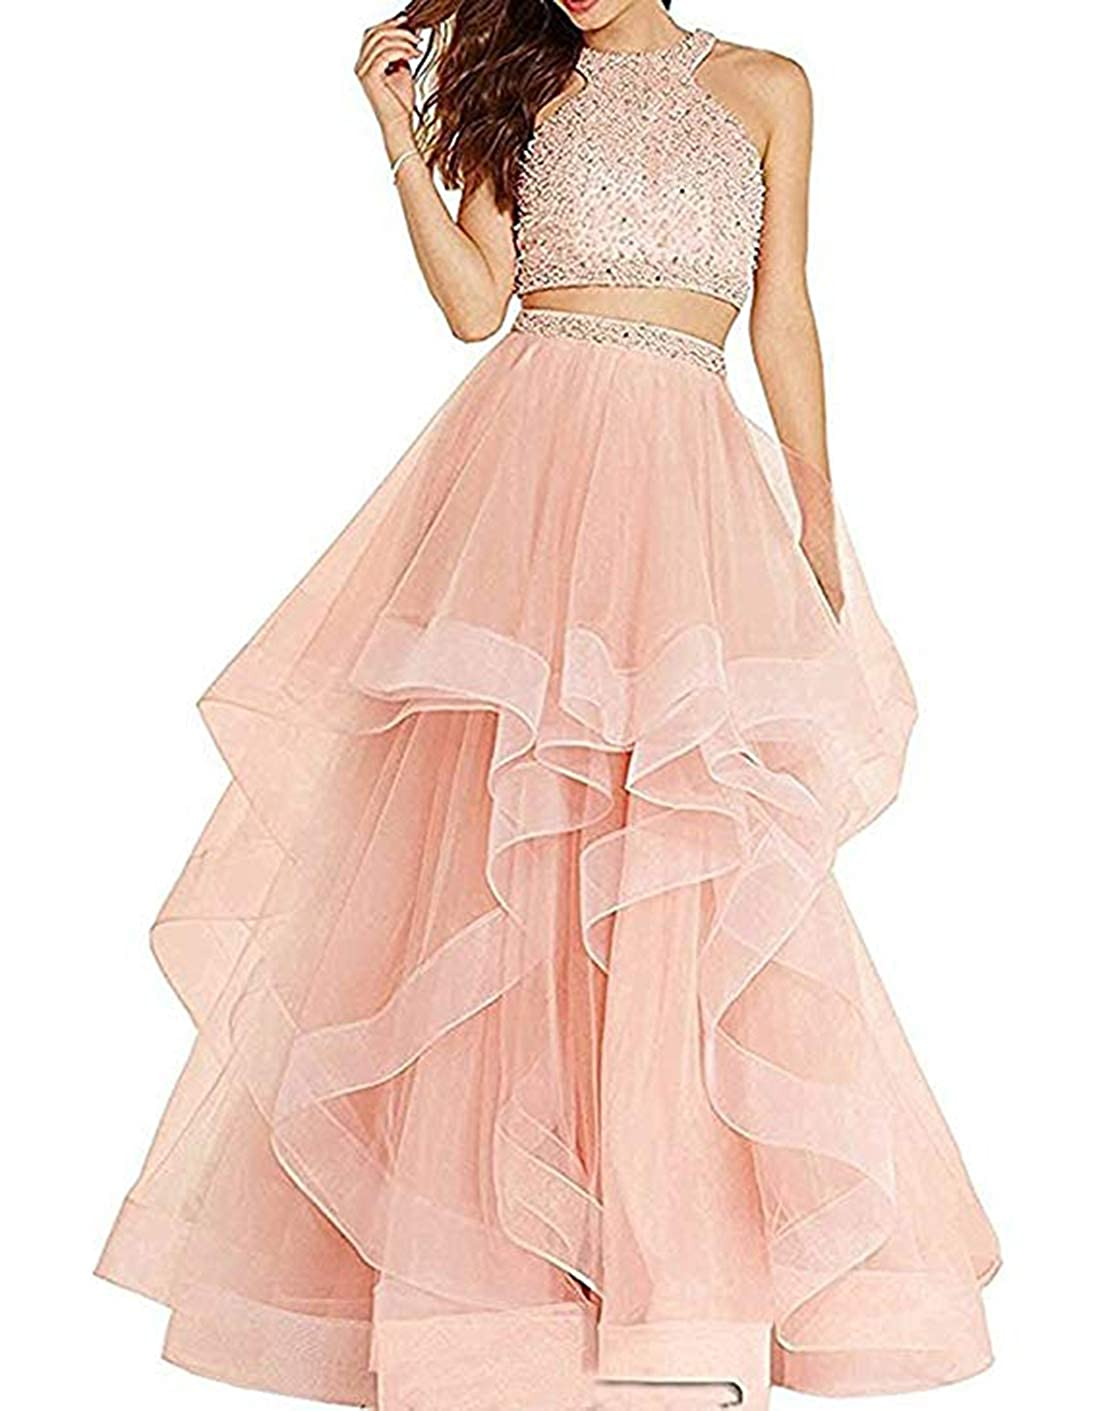 bluesh olise bridal Sexy Two Pieces Prom Dresses Long High Neck Tulle Women Party Evening Gowns